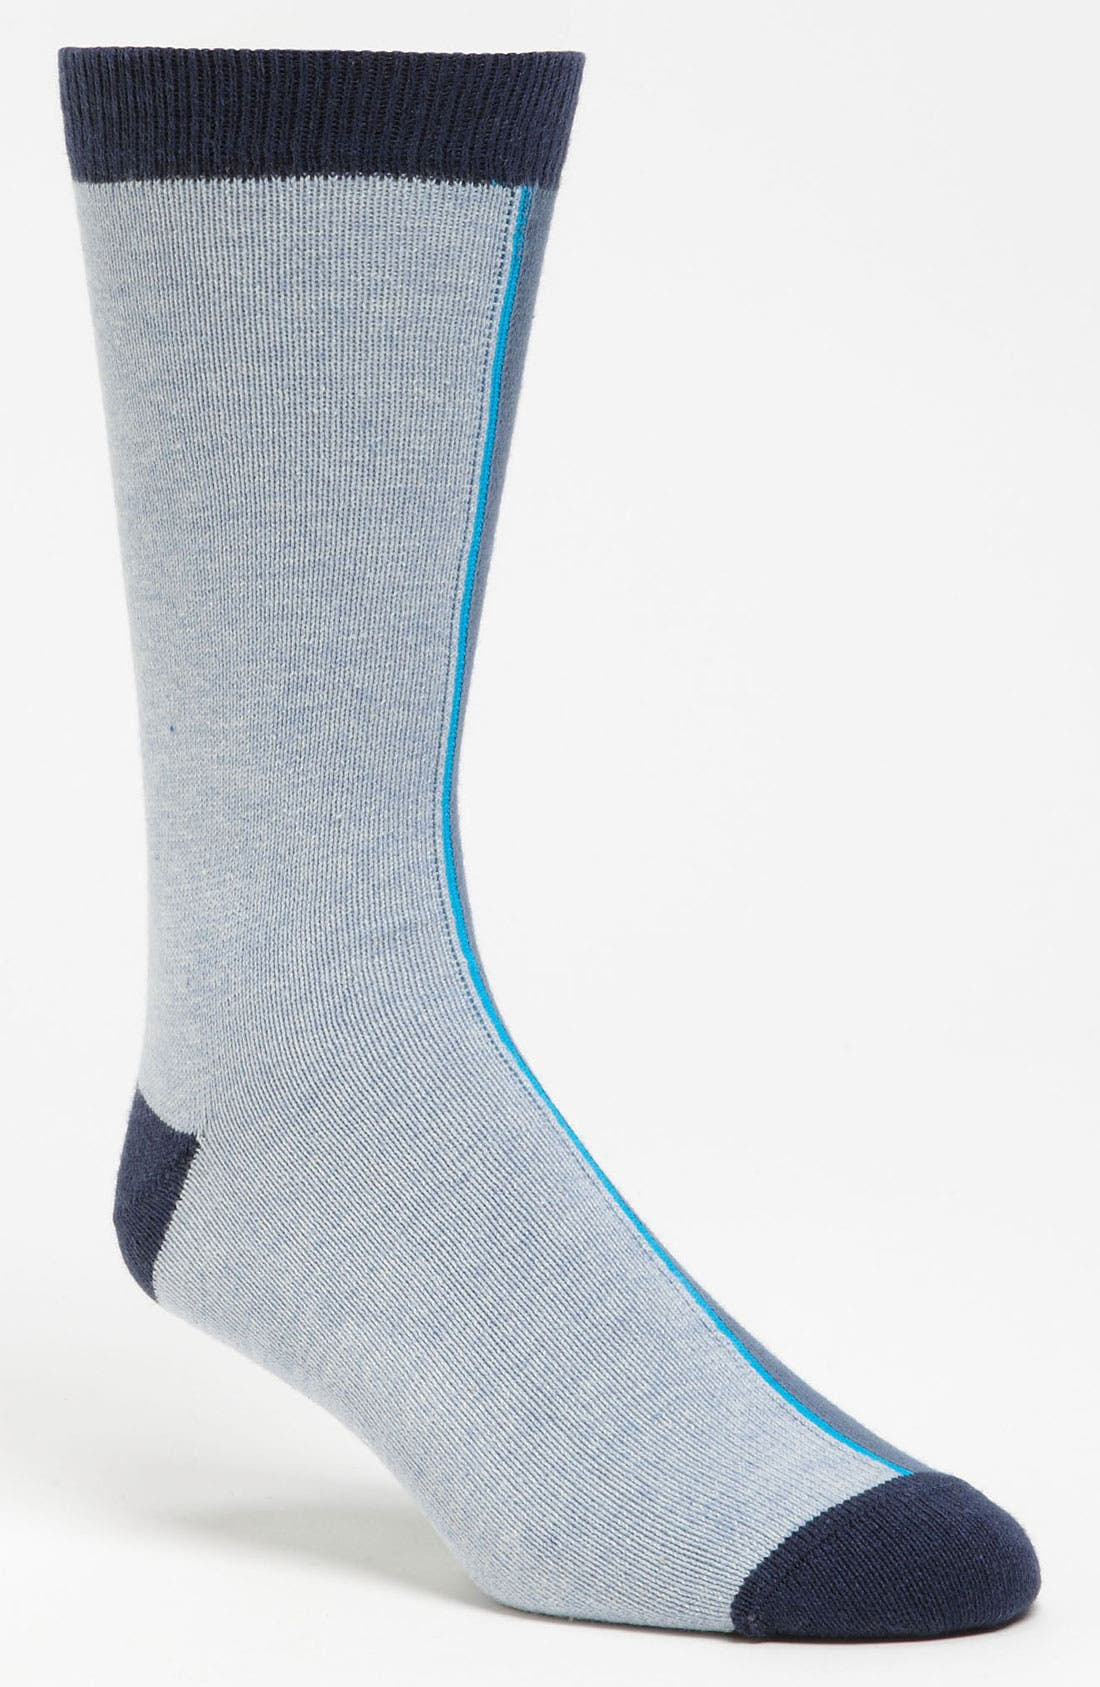 Alternate Image 1 Selected - Paul Smith Accessories 'London' Vertical Stripe Socks